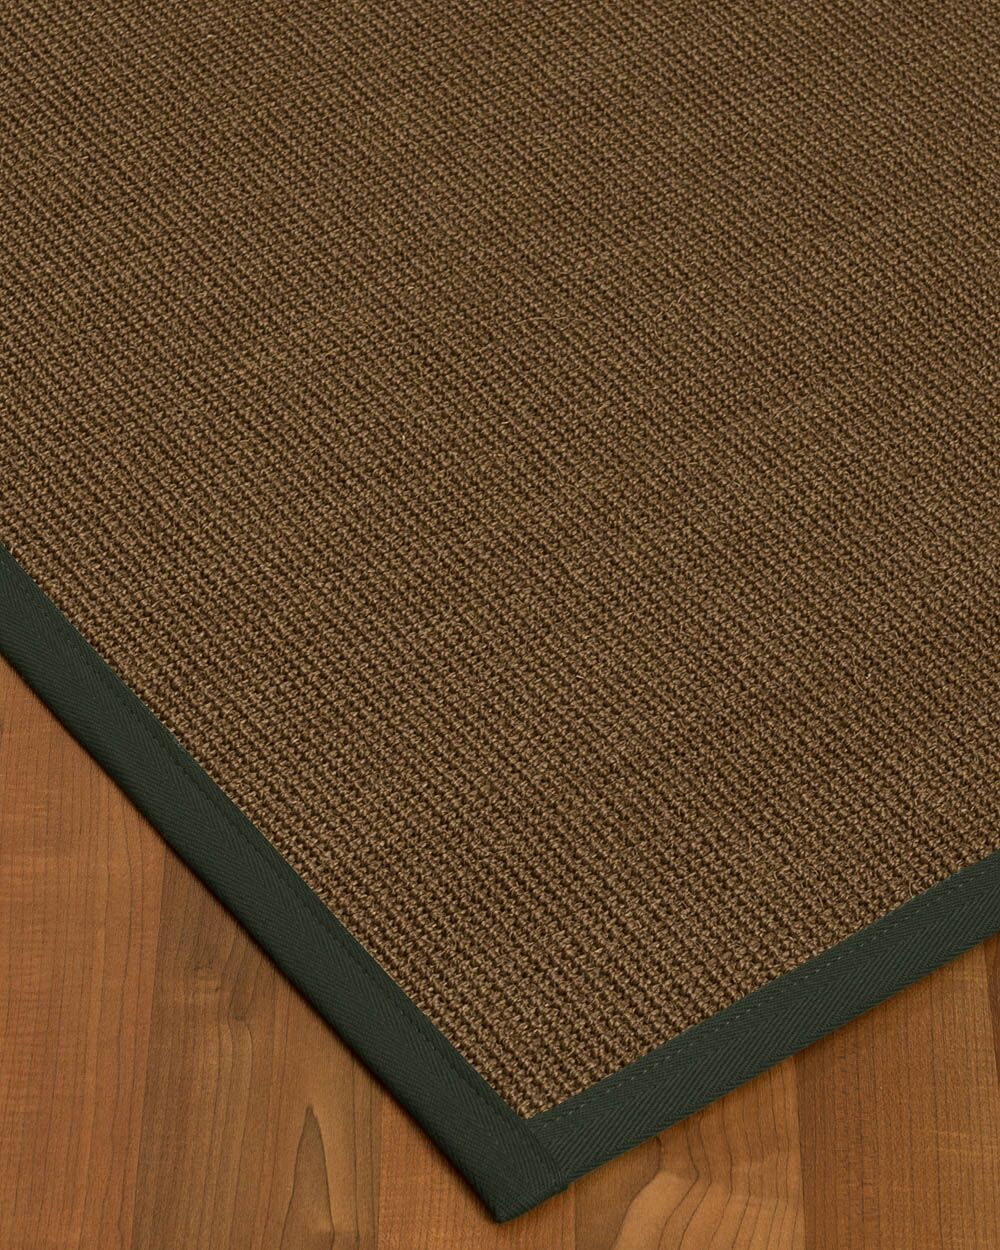 Kerner Border Hand-Woven Brown/Green Area Rug Rug Size: Rectangle 4' x 6', Rug Pad Included: Yes